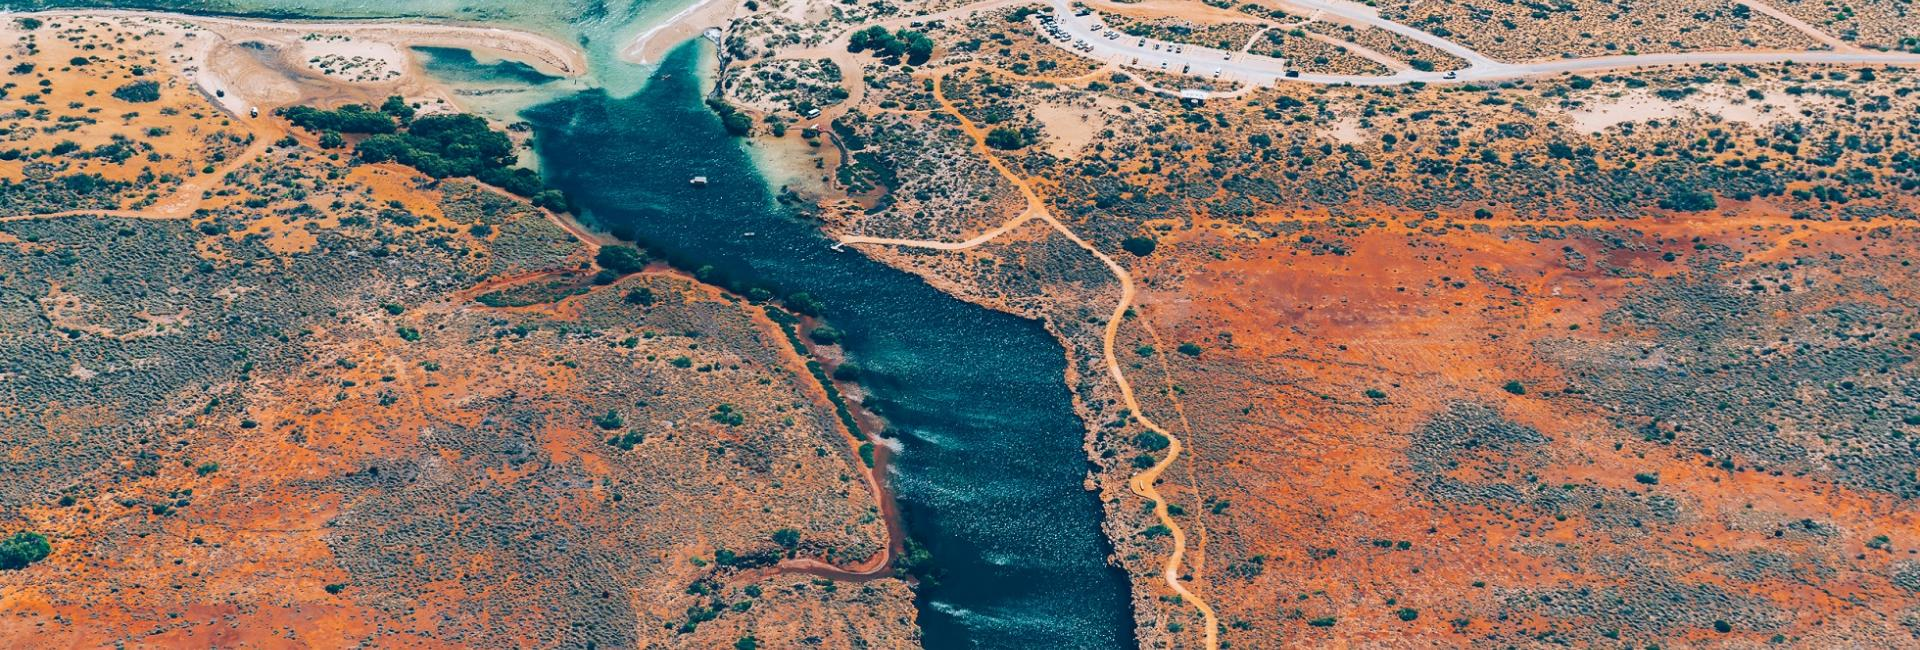 An aerial view of Yardie Creek in Cape Range National Park, Western Australia